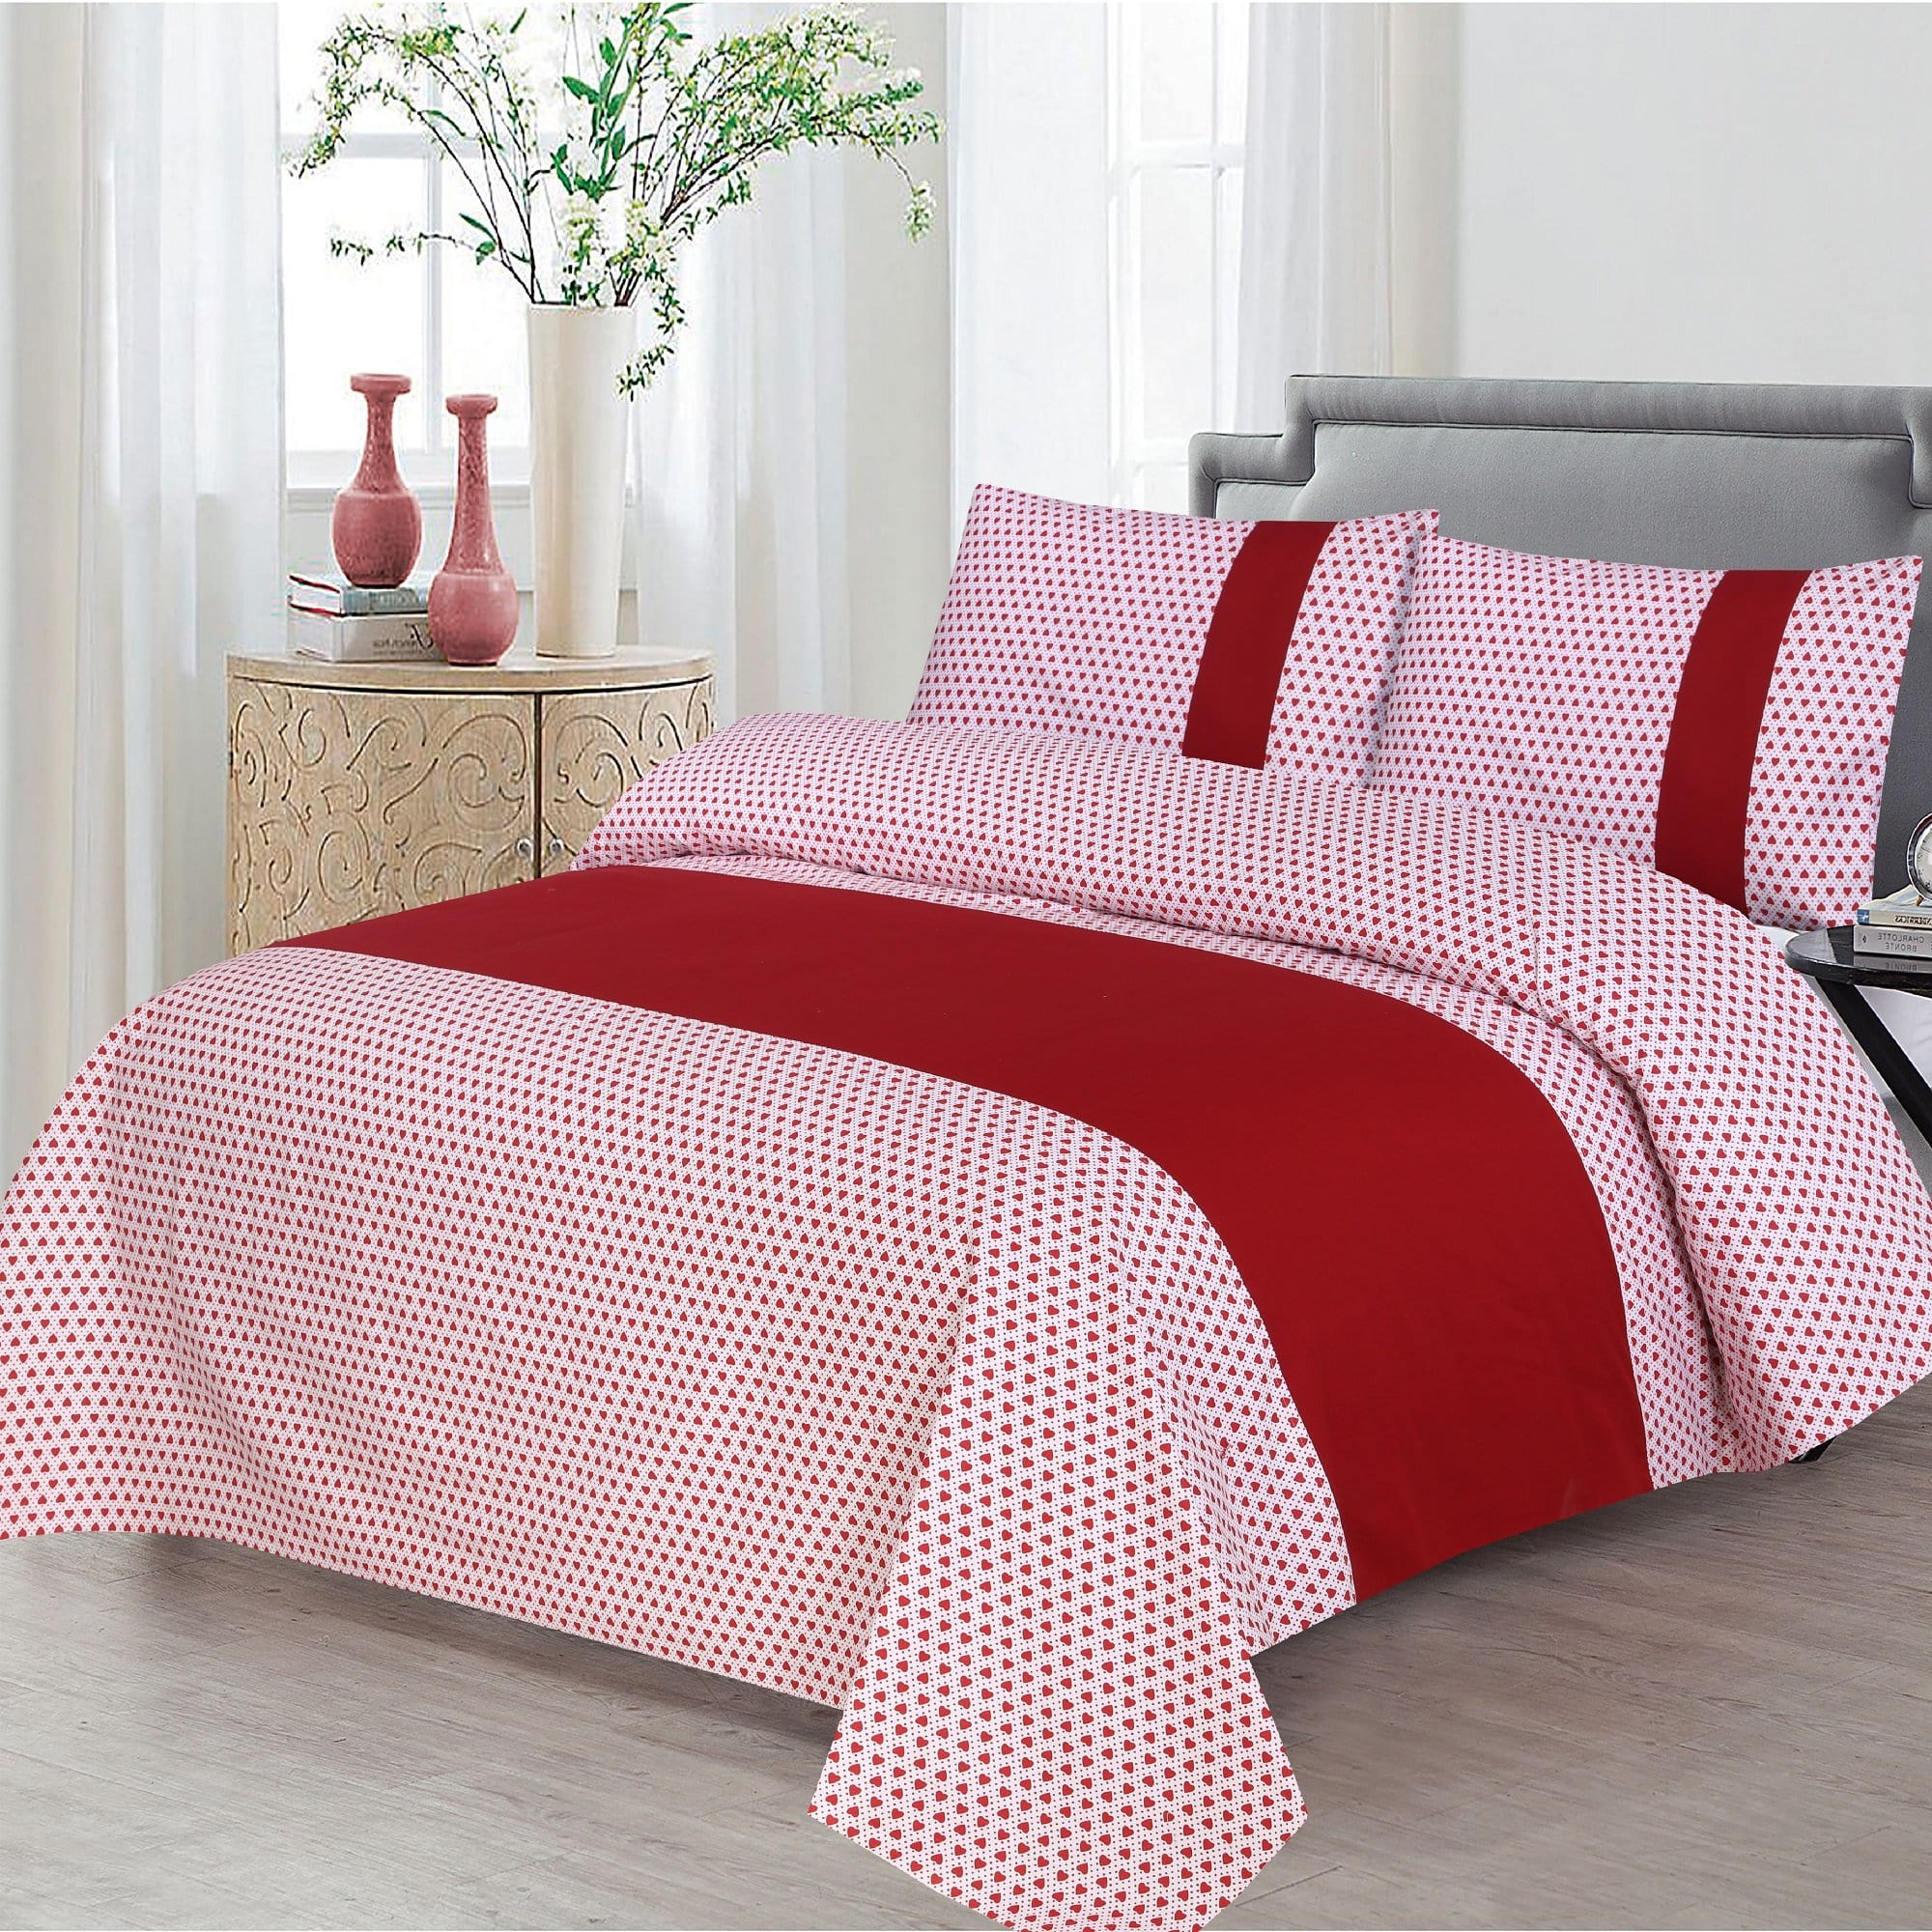 Grace D399-Cotton duck king size  (Patch work) Bedsheet with 2 pillow covers.